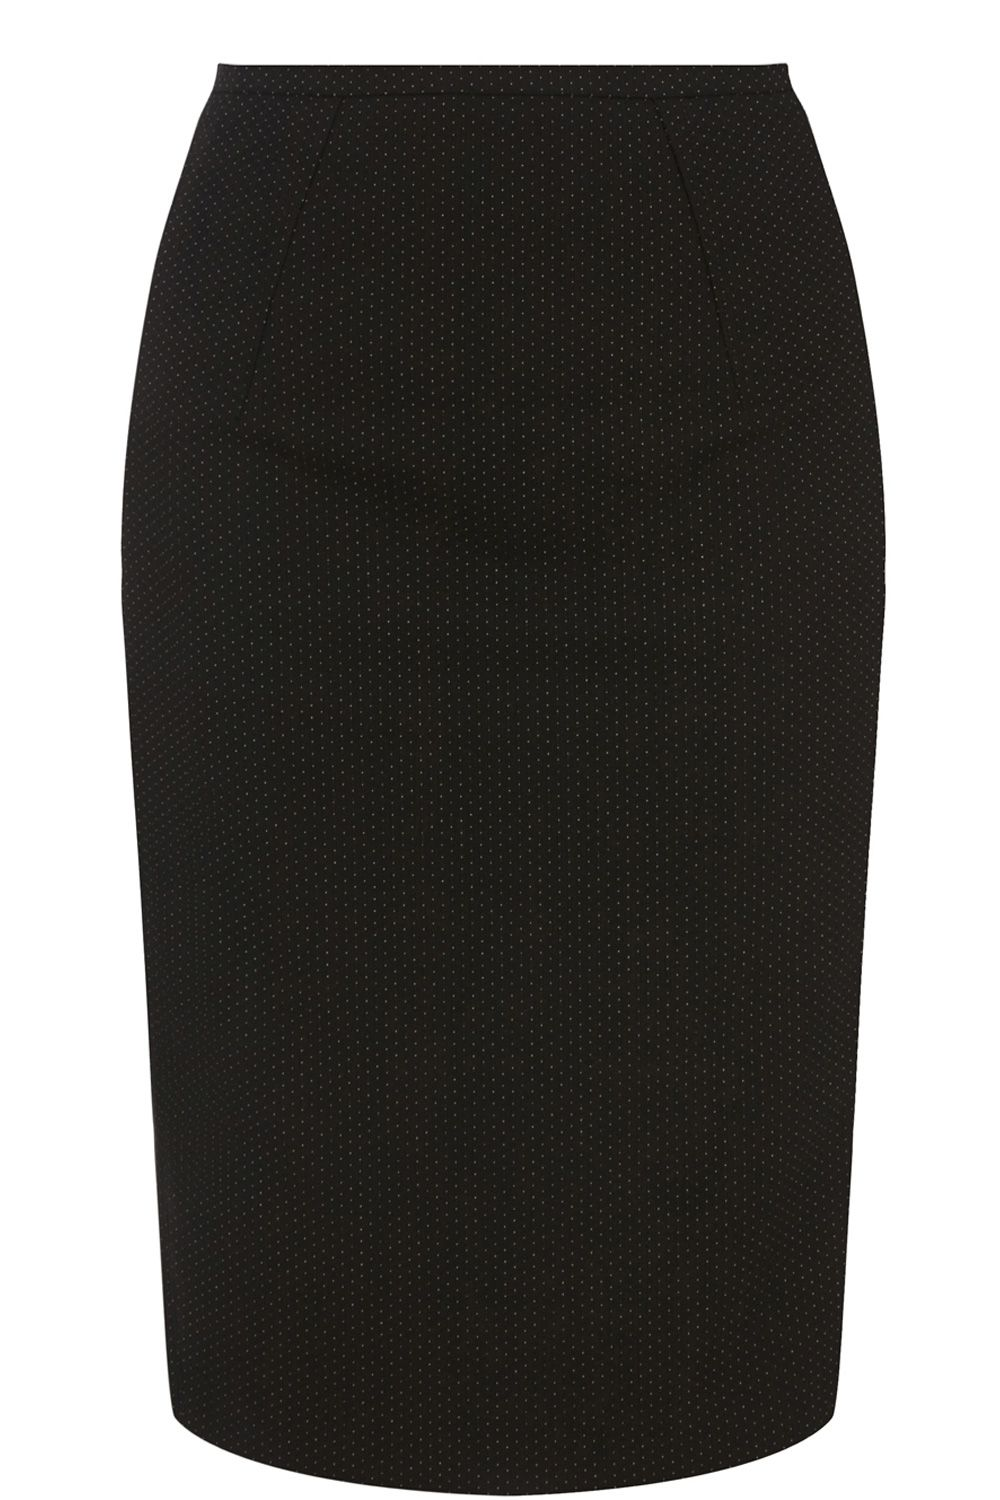 Kelly spot pencil skirt